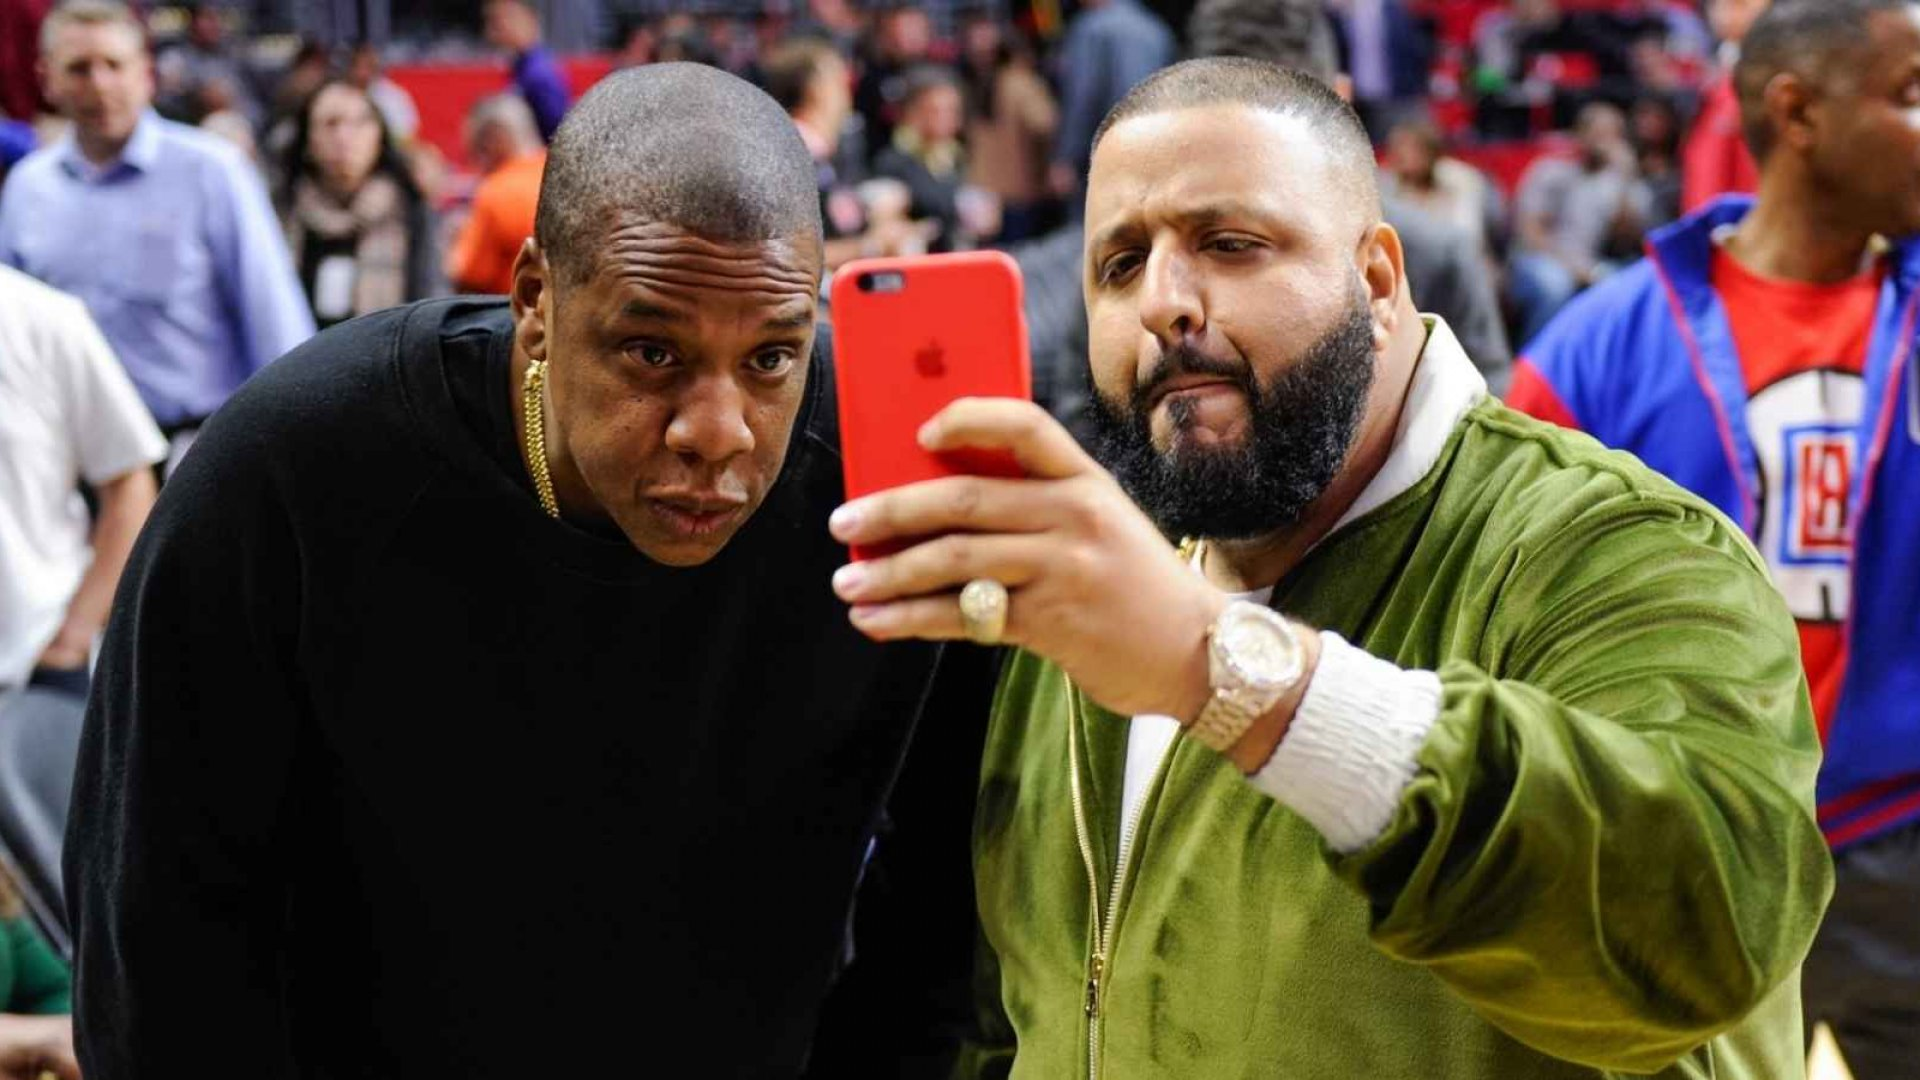 Jay Z (L) and DJ Khaled attend a basketball game between the Miami Heat and the Los Angeles Clippers